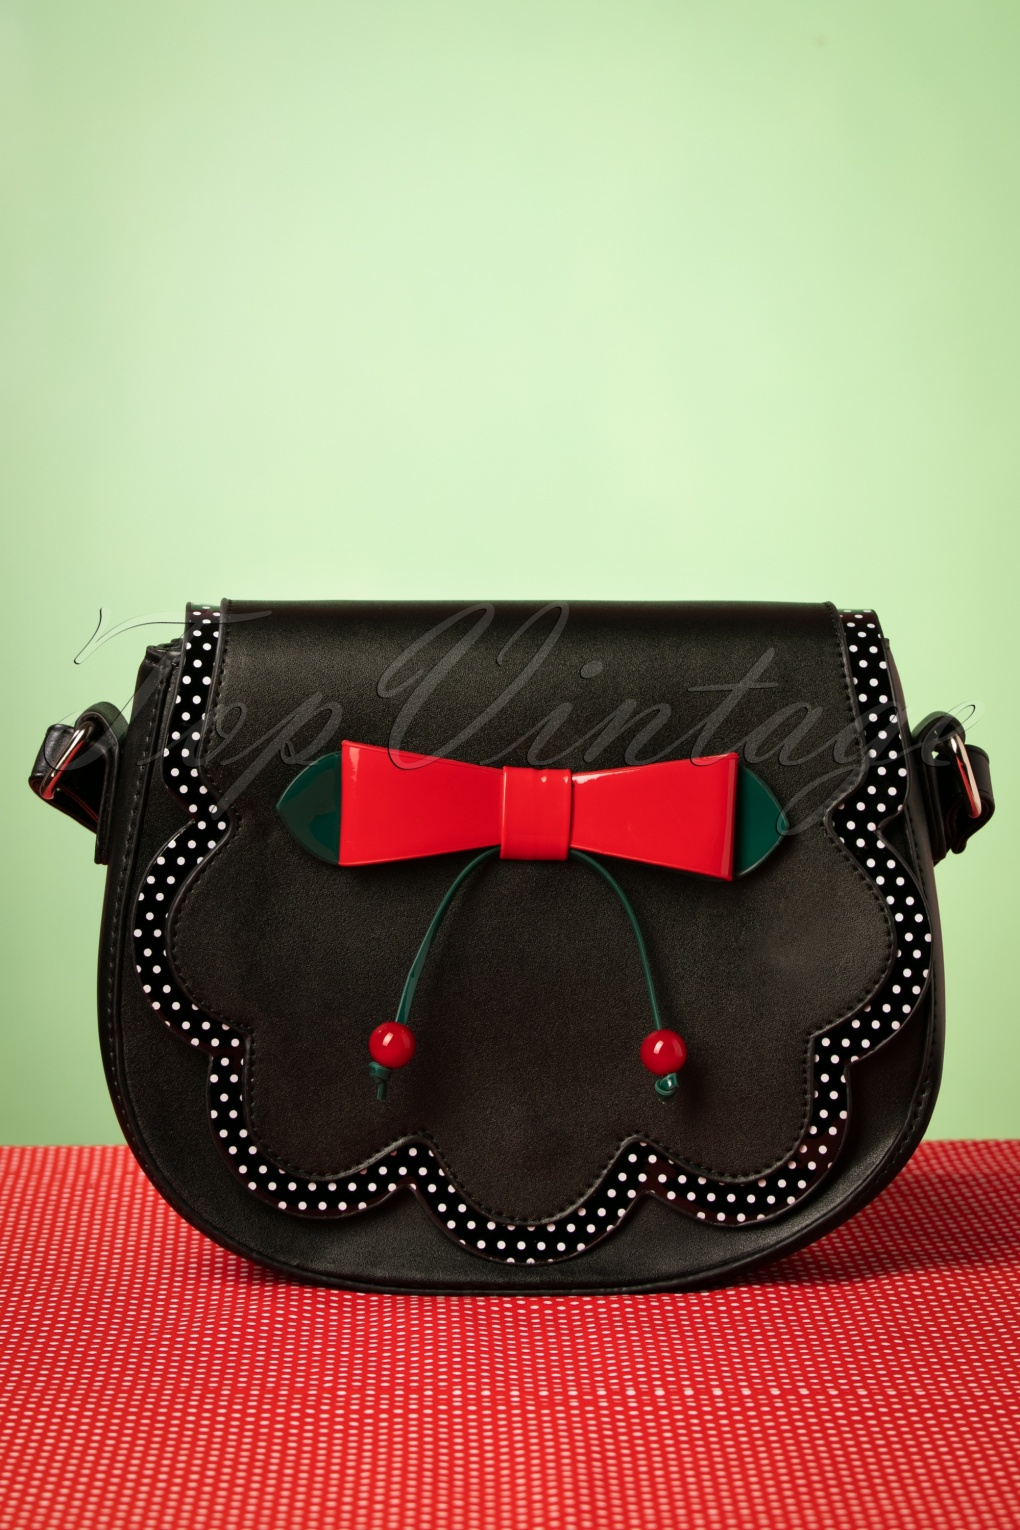 1950s Handbags, Purses, and Evening Bag Styles 50s Marilou Bag in Black £32.63 AT vintagedancer.com